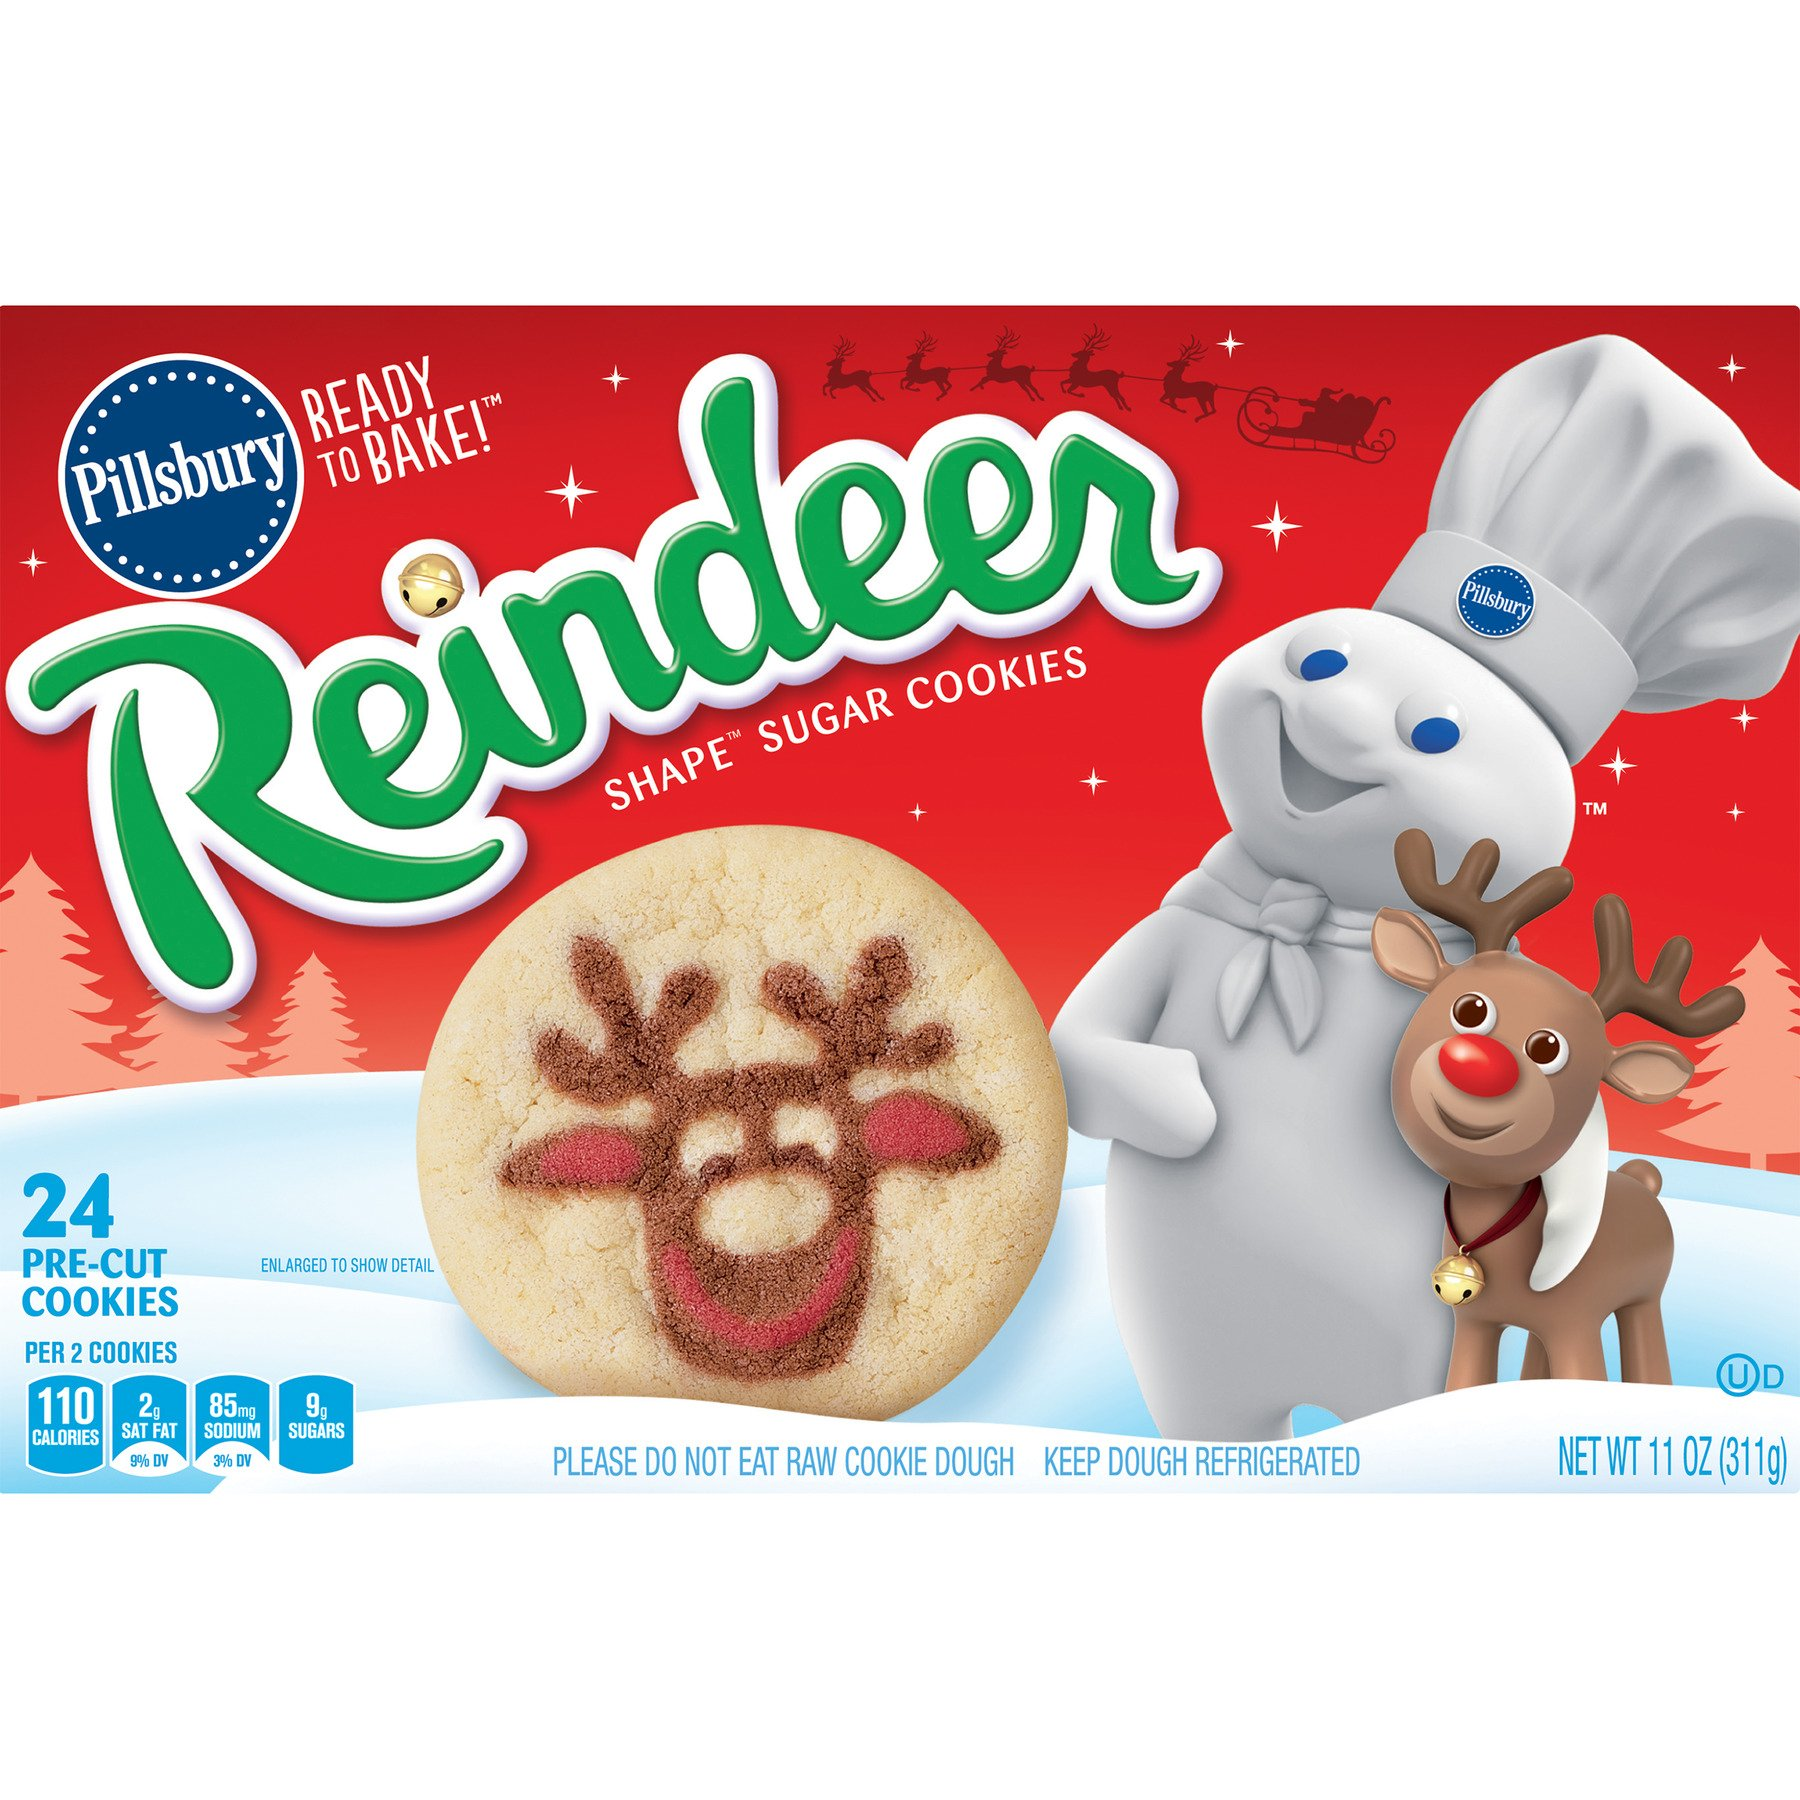 Pillsbury Ready to Bake! Reindeer Shape Sugar